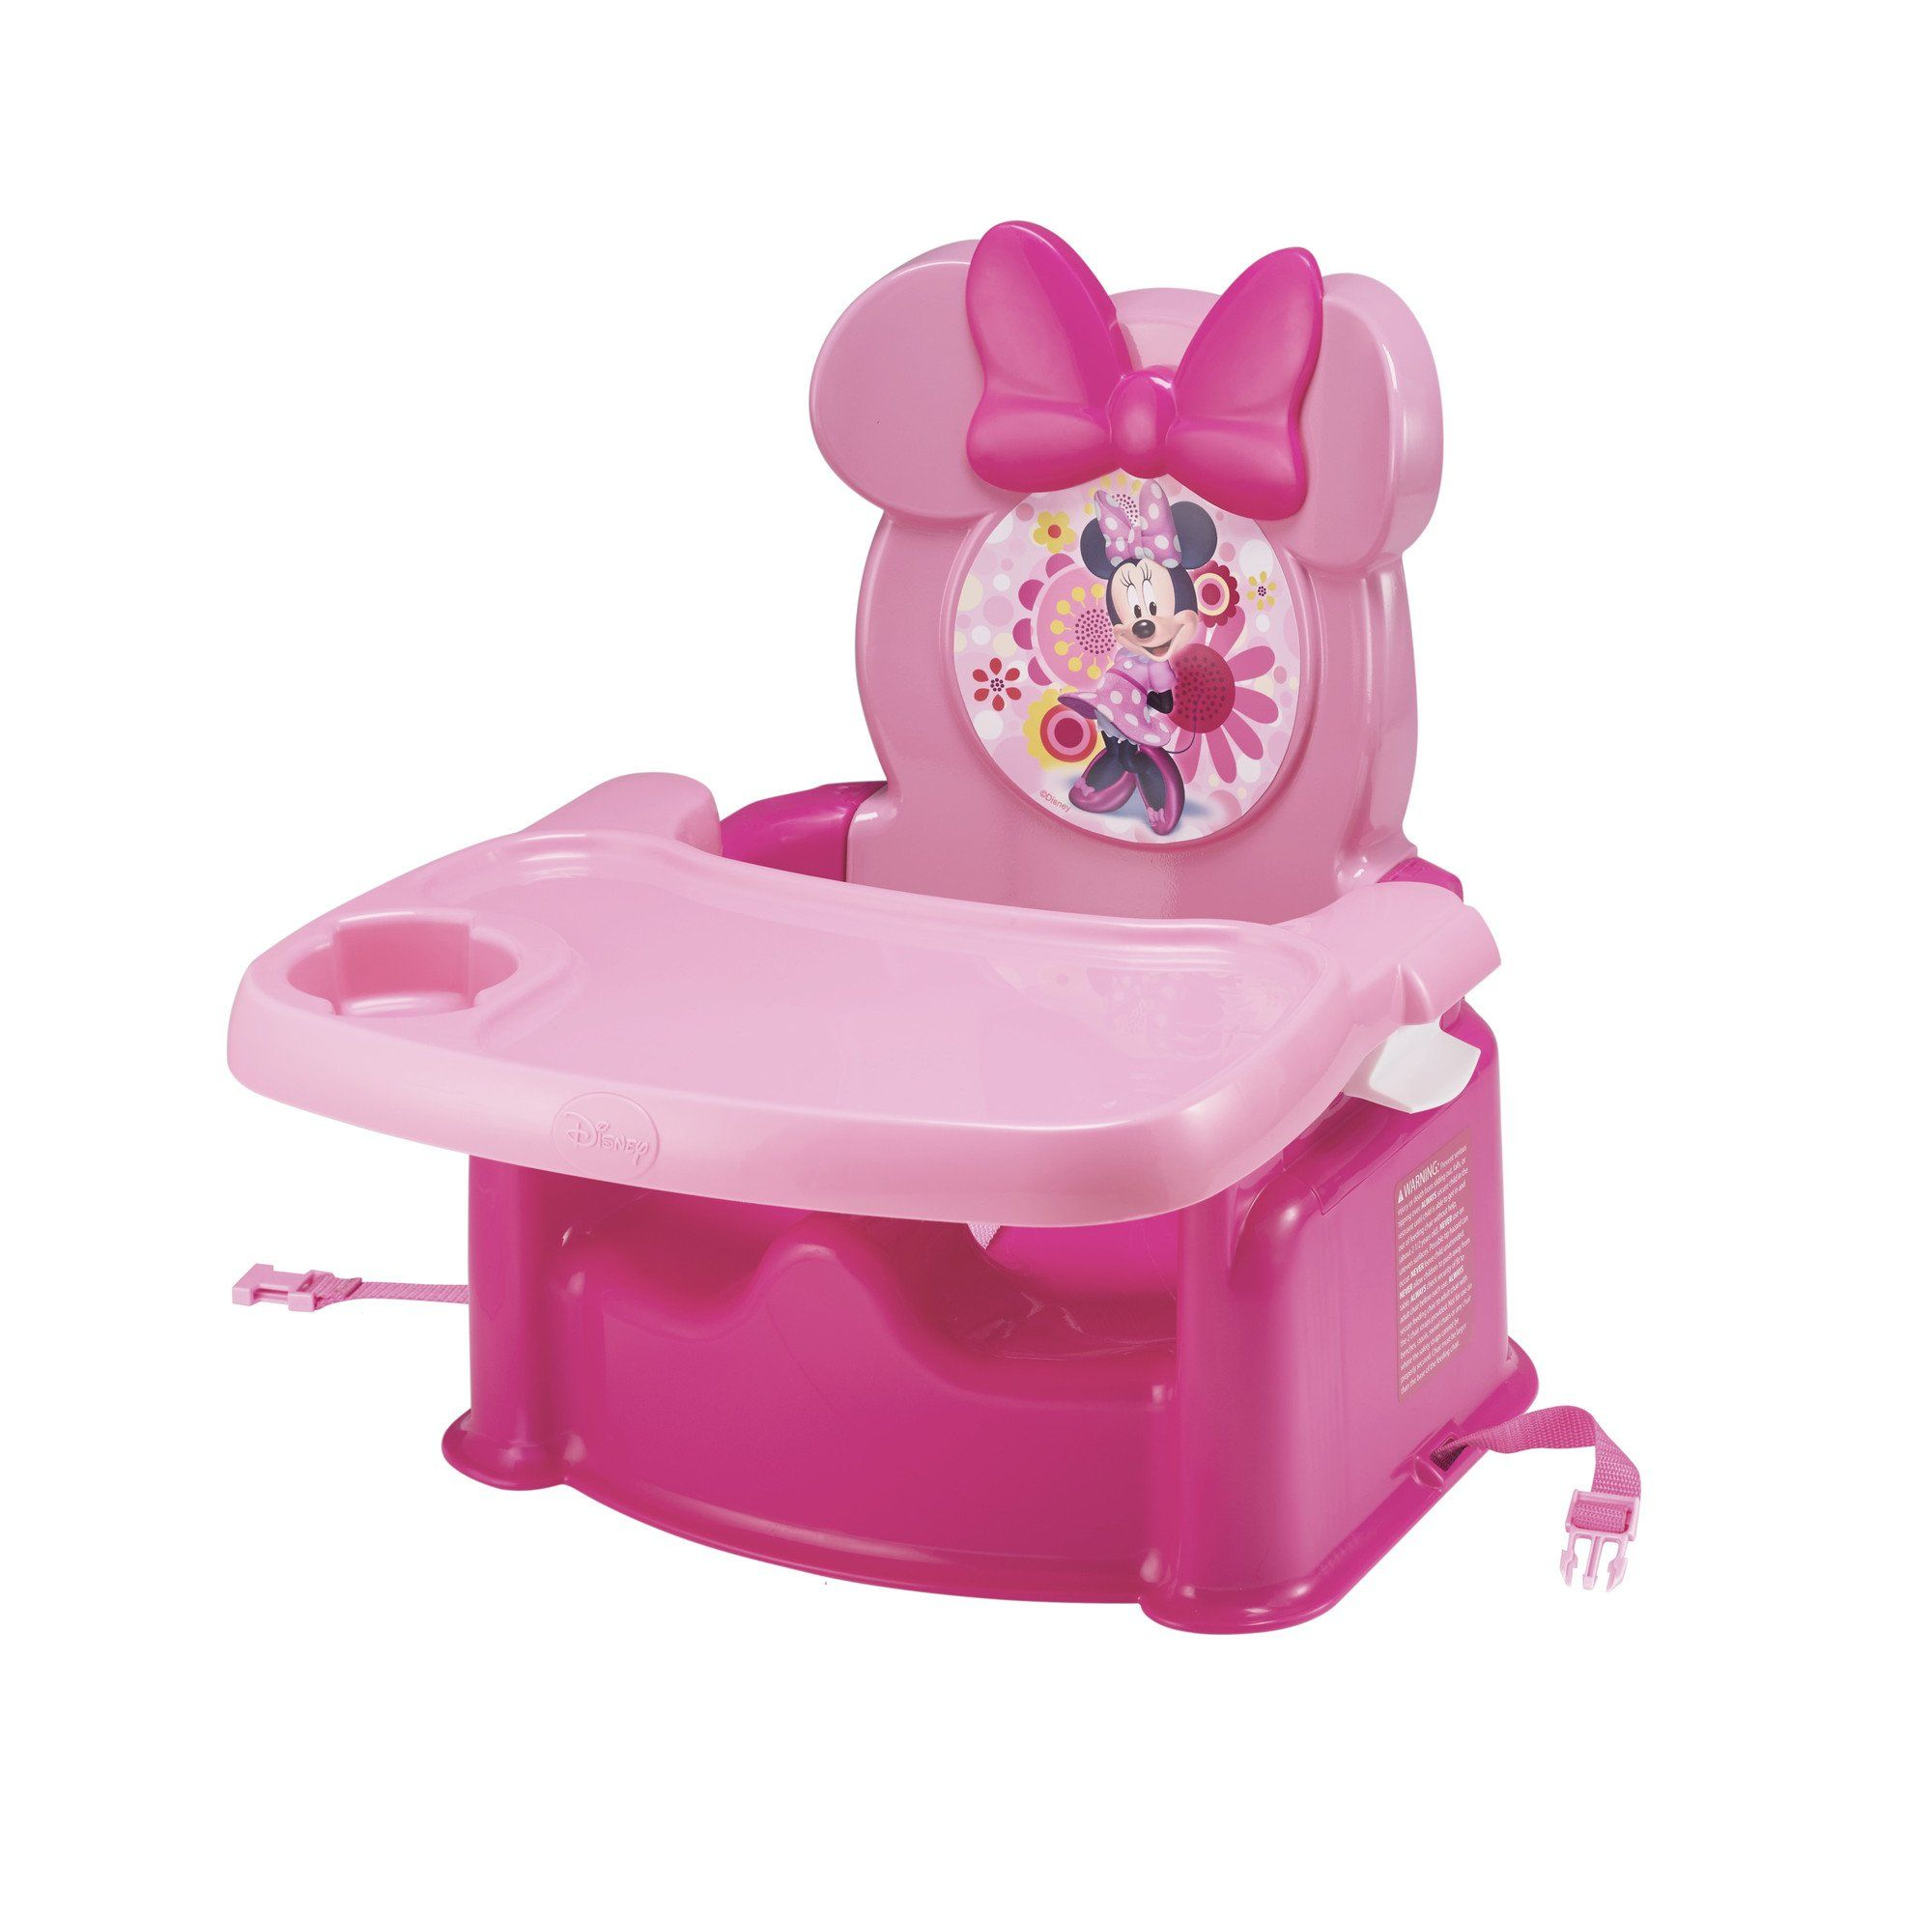 The First Years Disney Booster Seat Minnie Mouse *** You can find ...